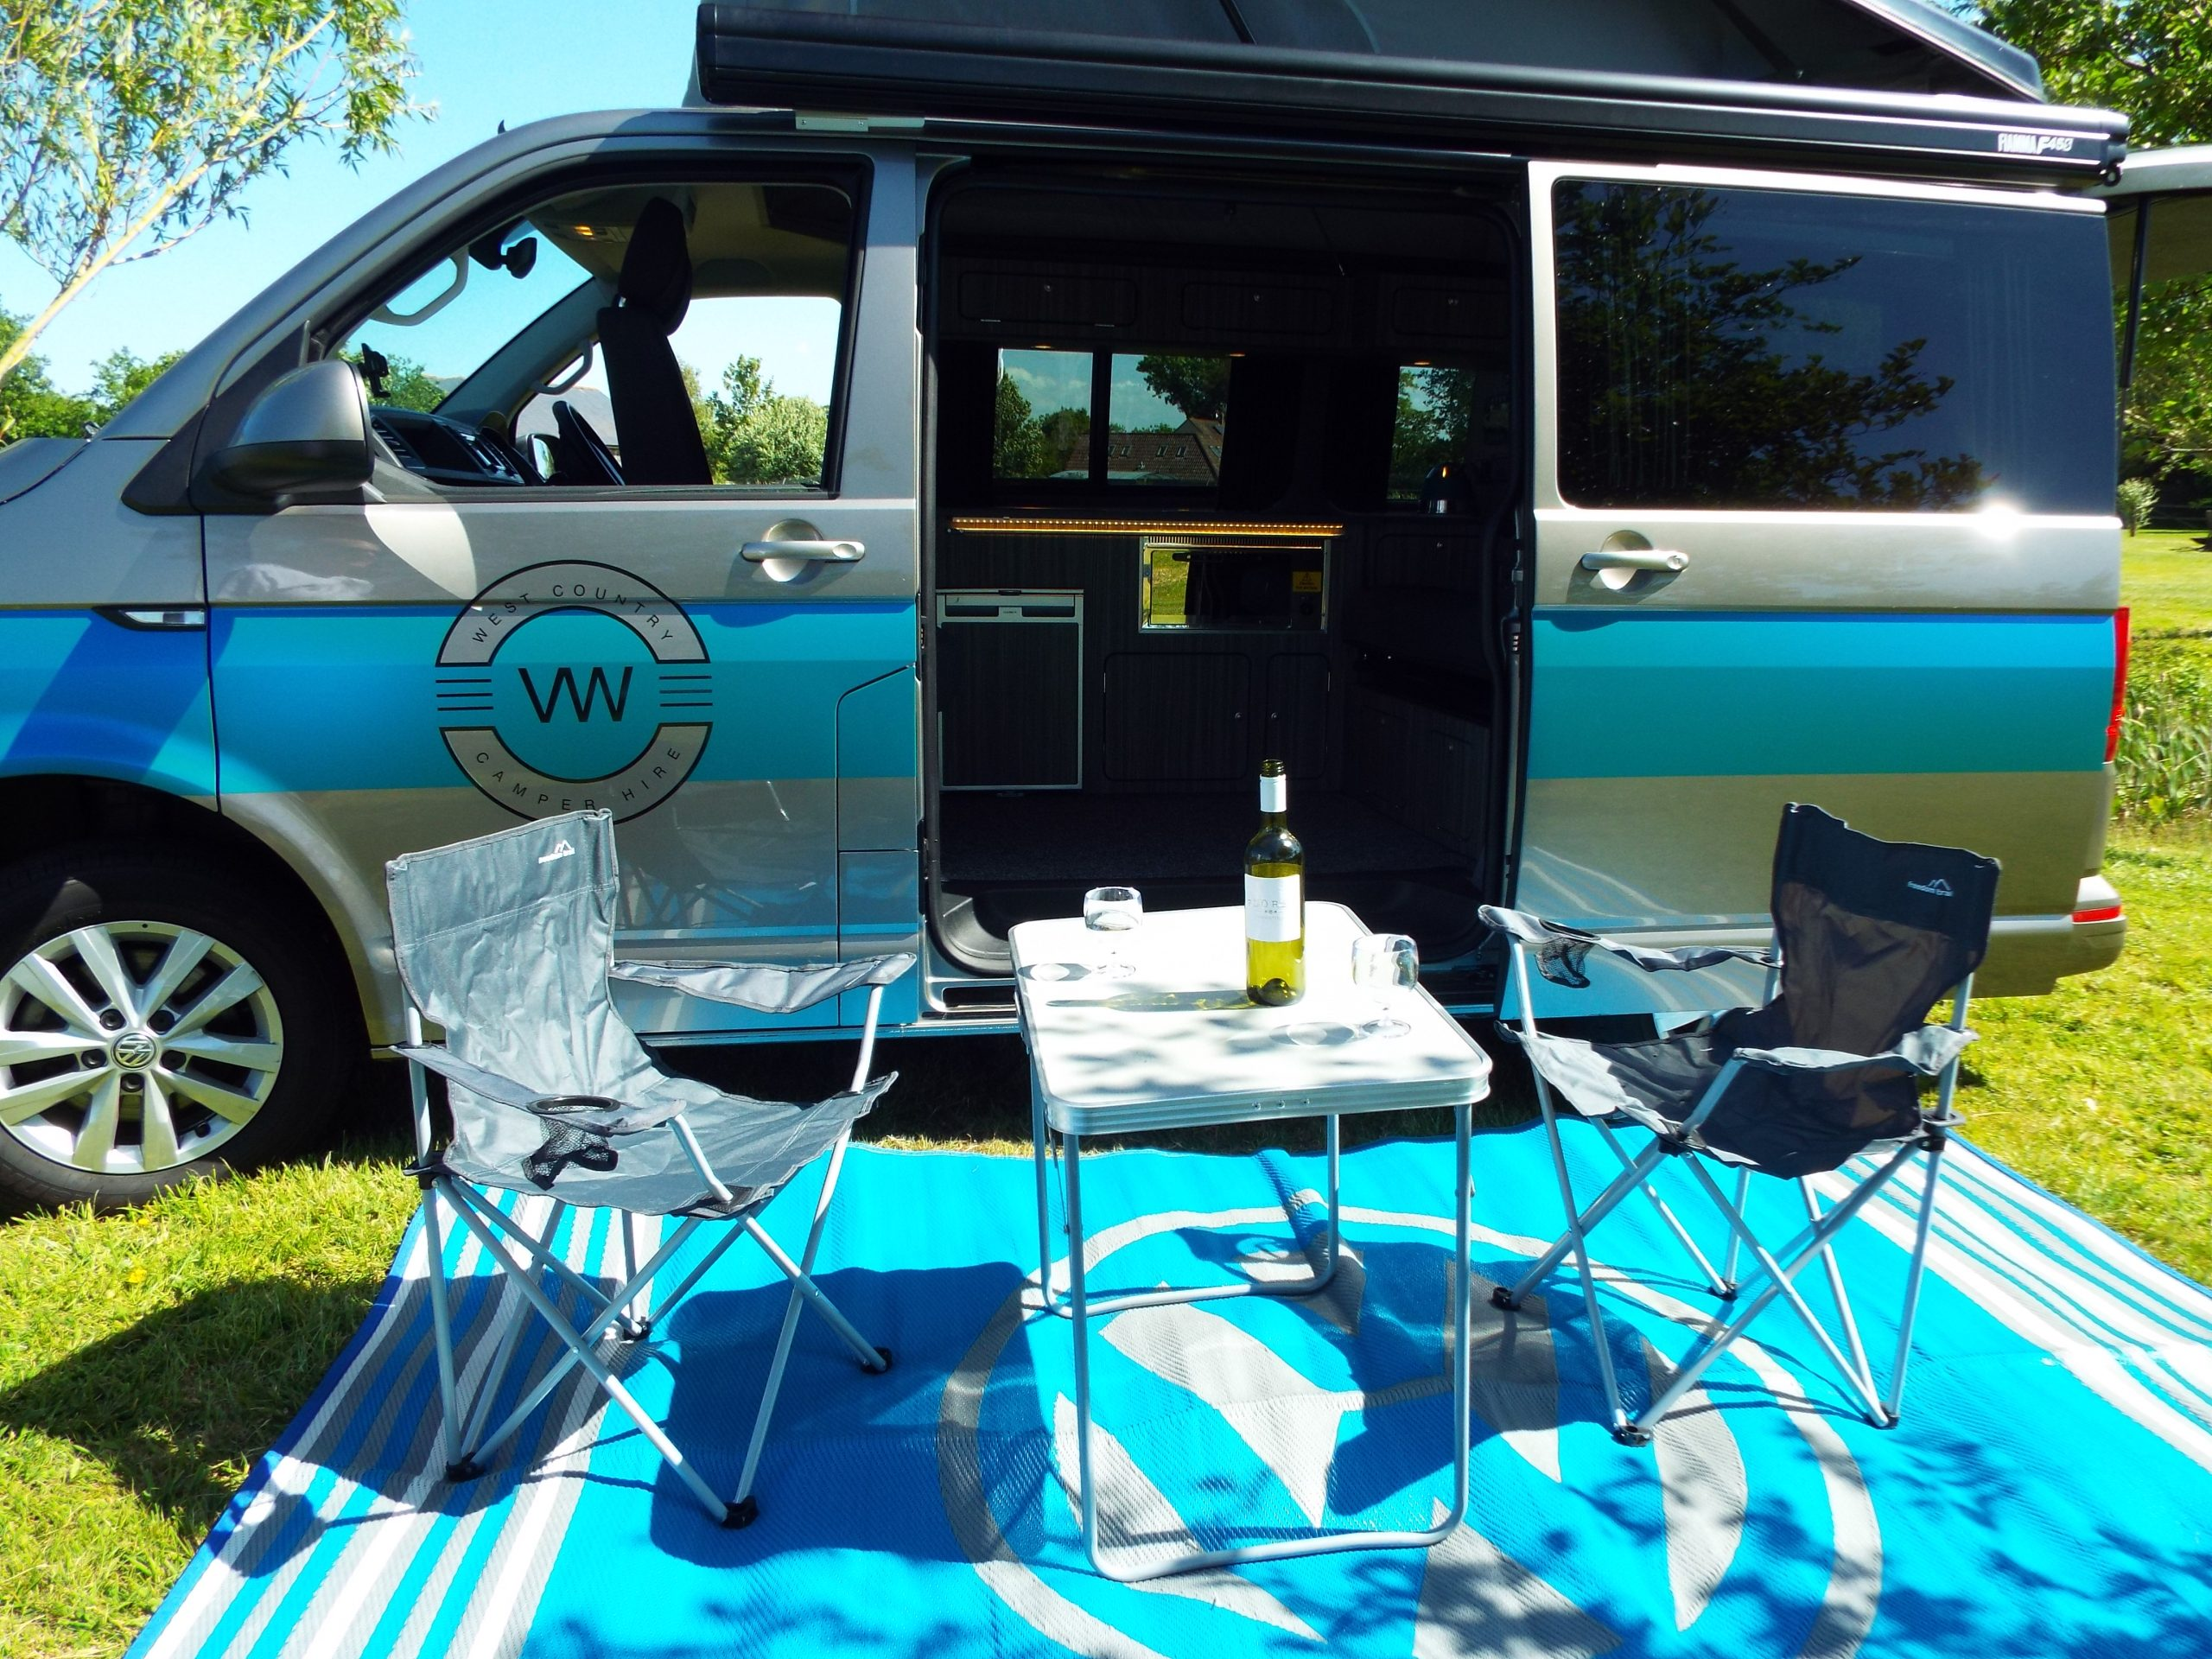 Camping in a campervan